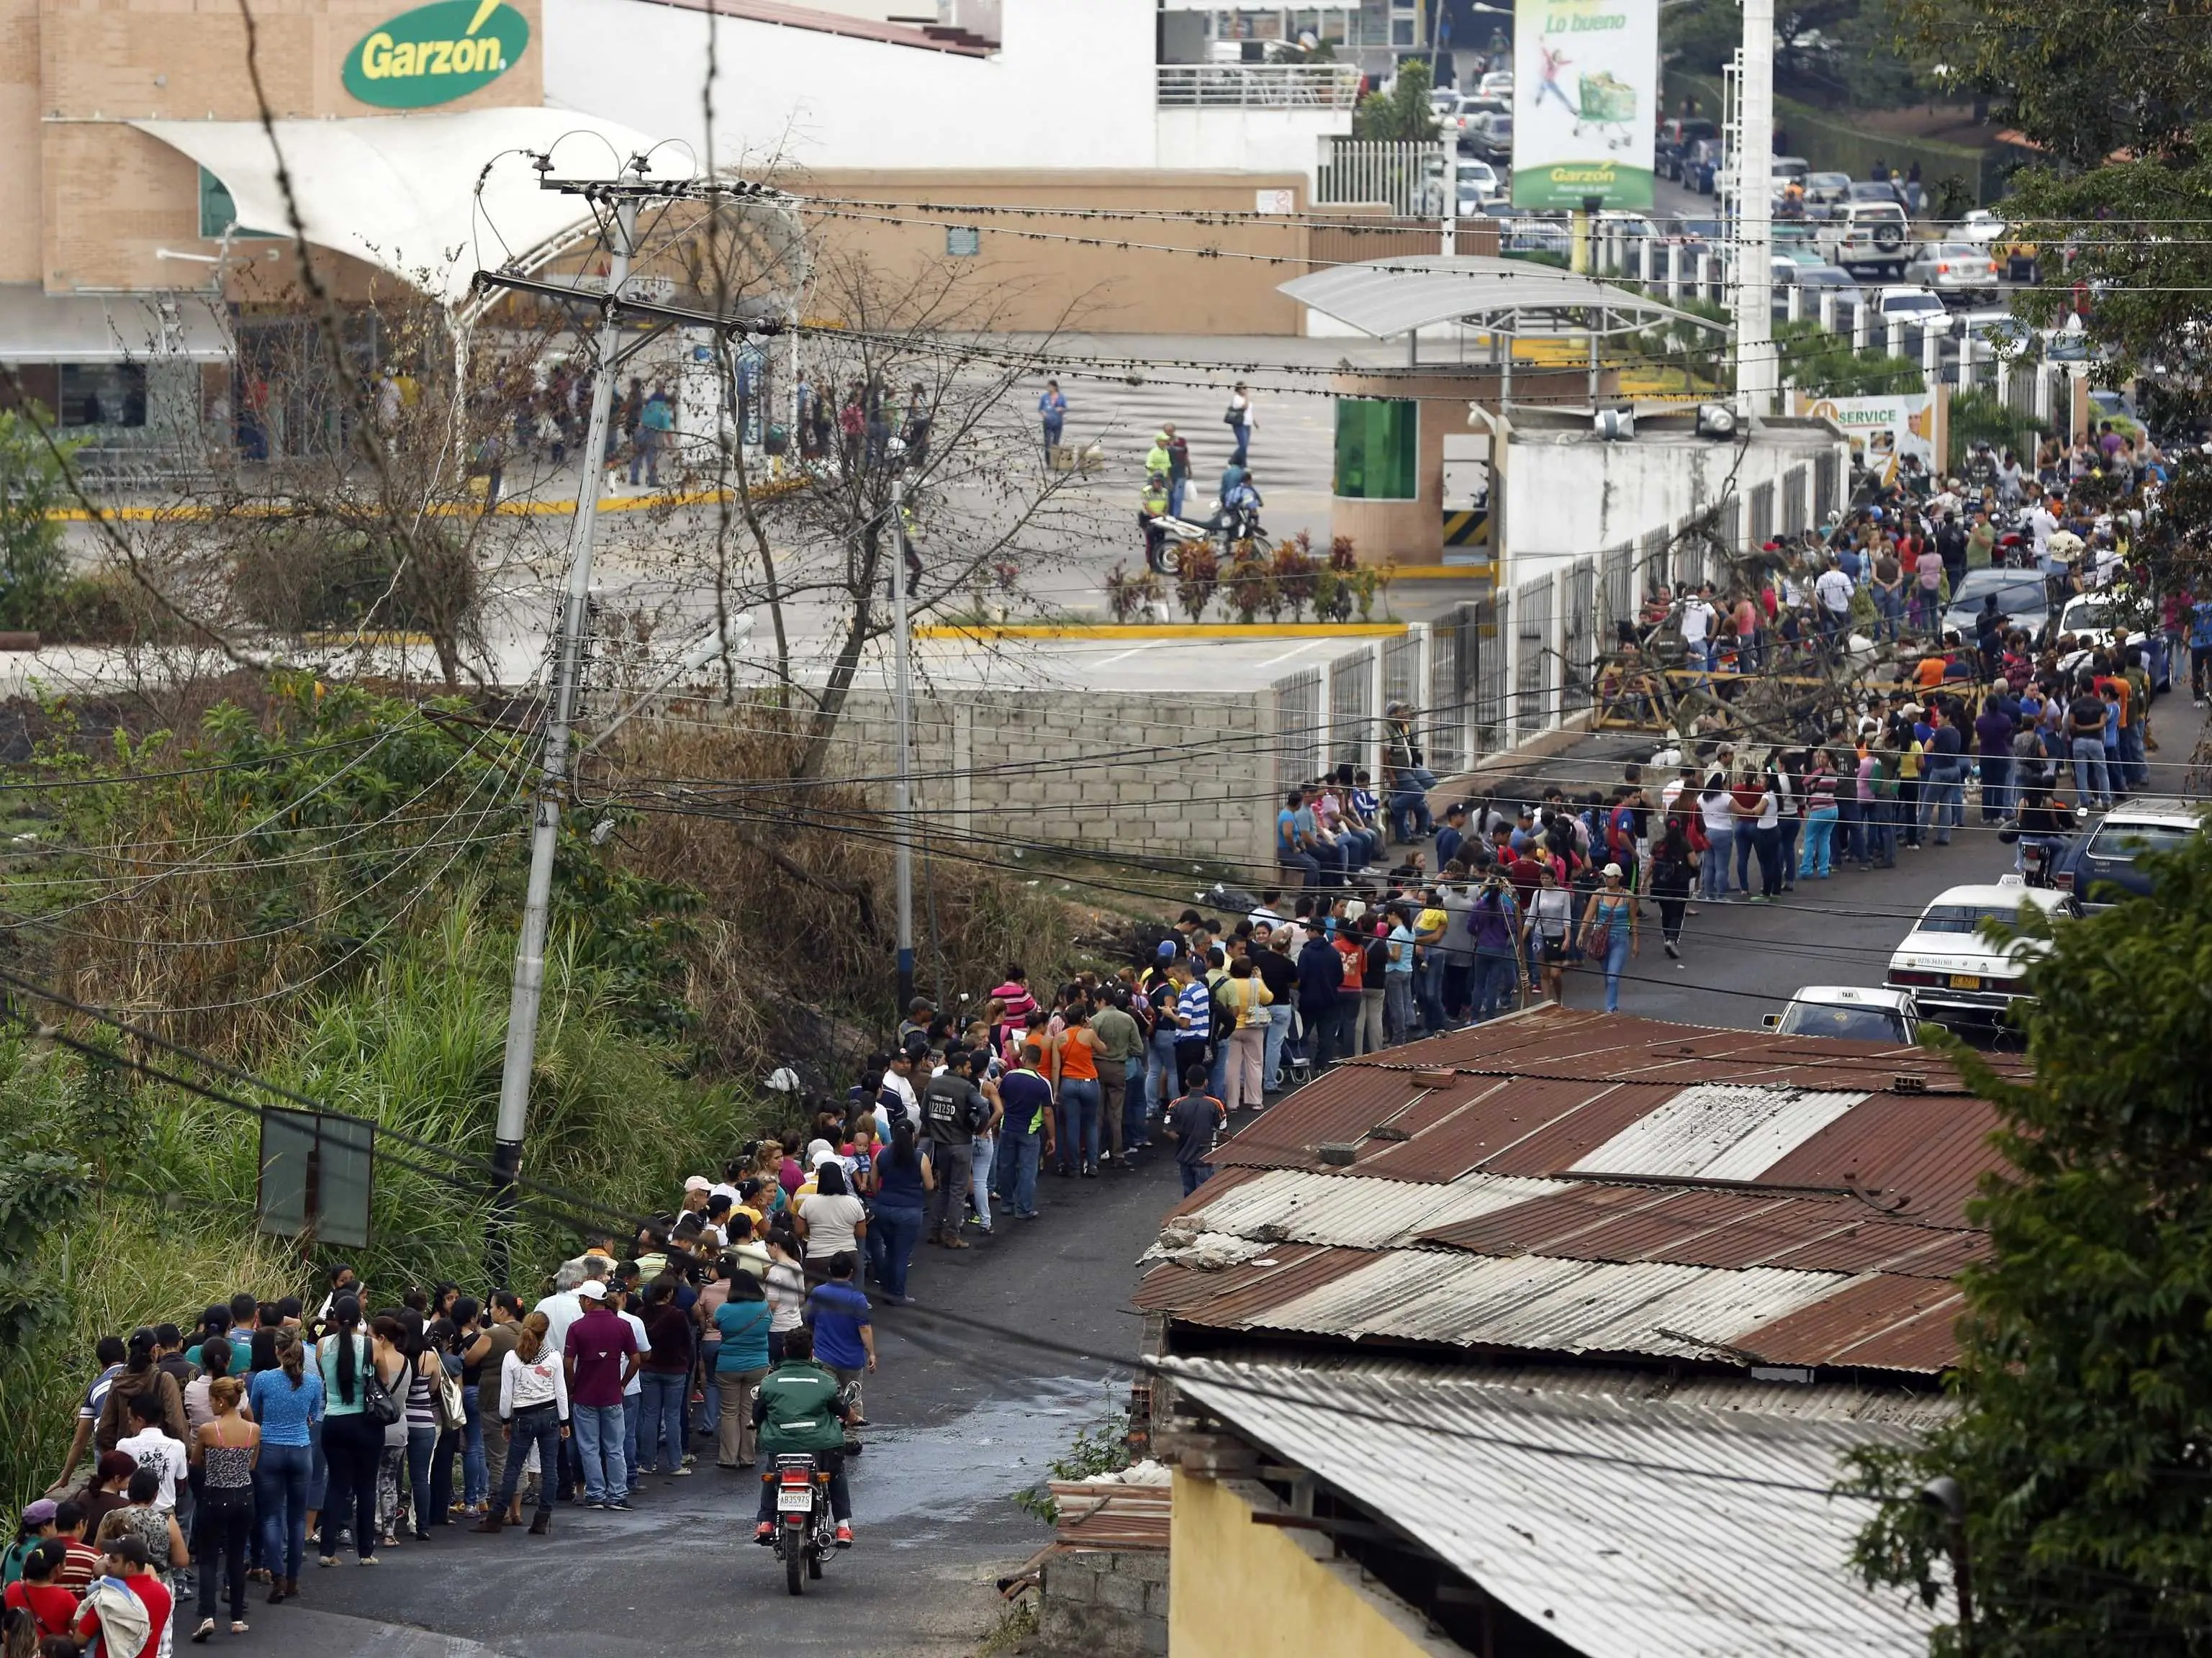 https://i2.wp.com/static3.businessinsider.com/image/5310c92decad04be055385c2-1200-924/food-line-in-venezuela-san-cristobal.jpg